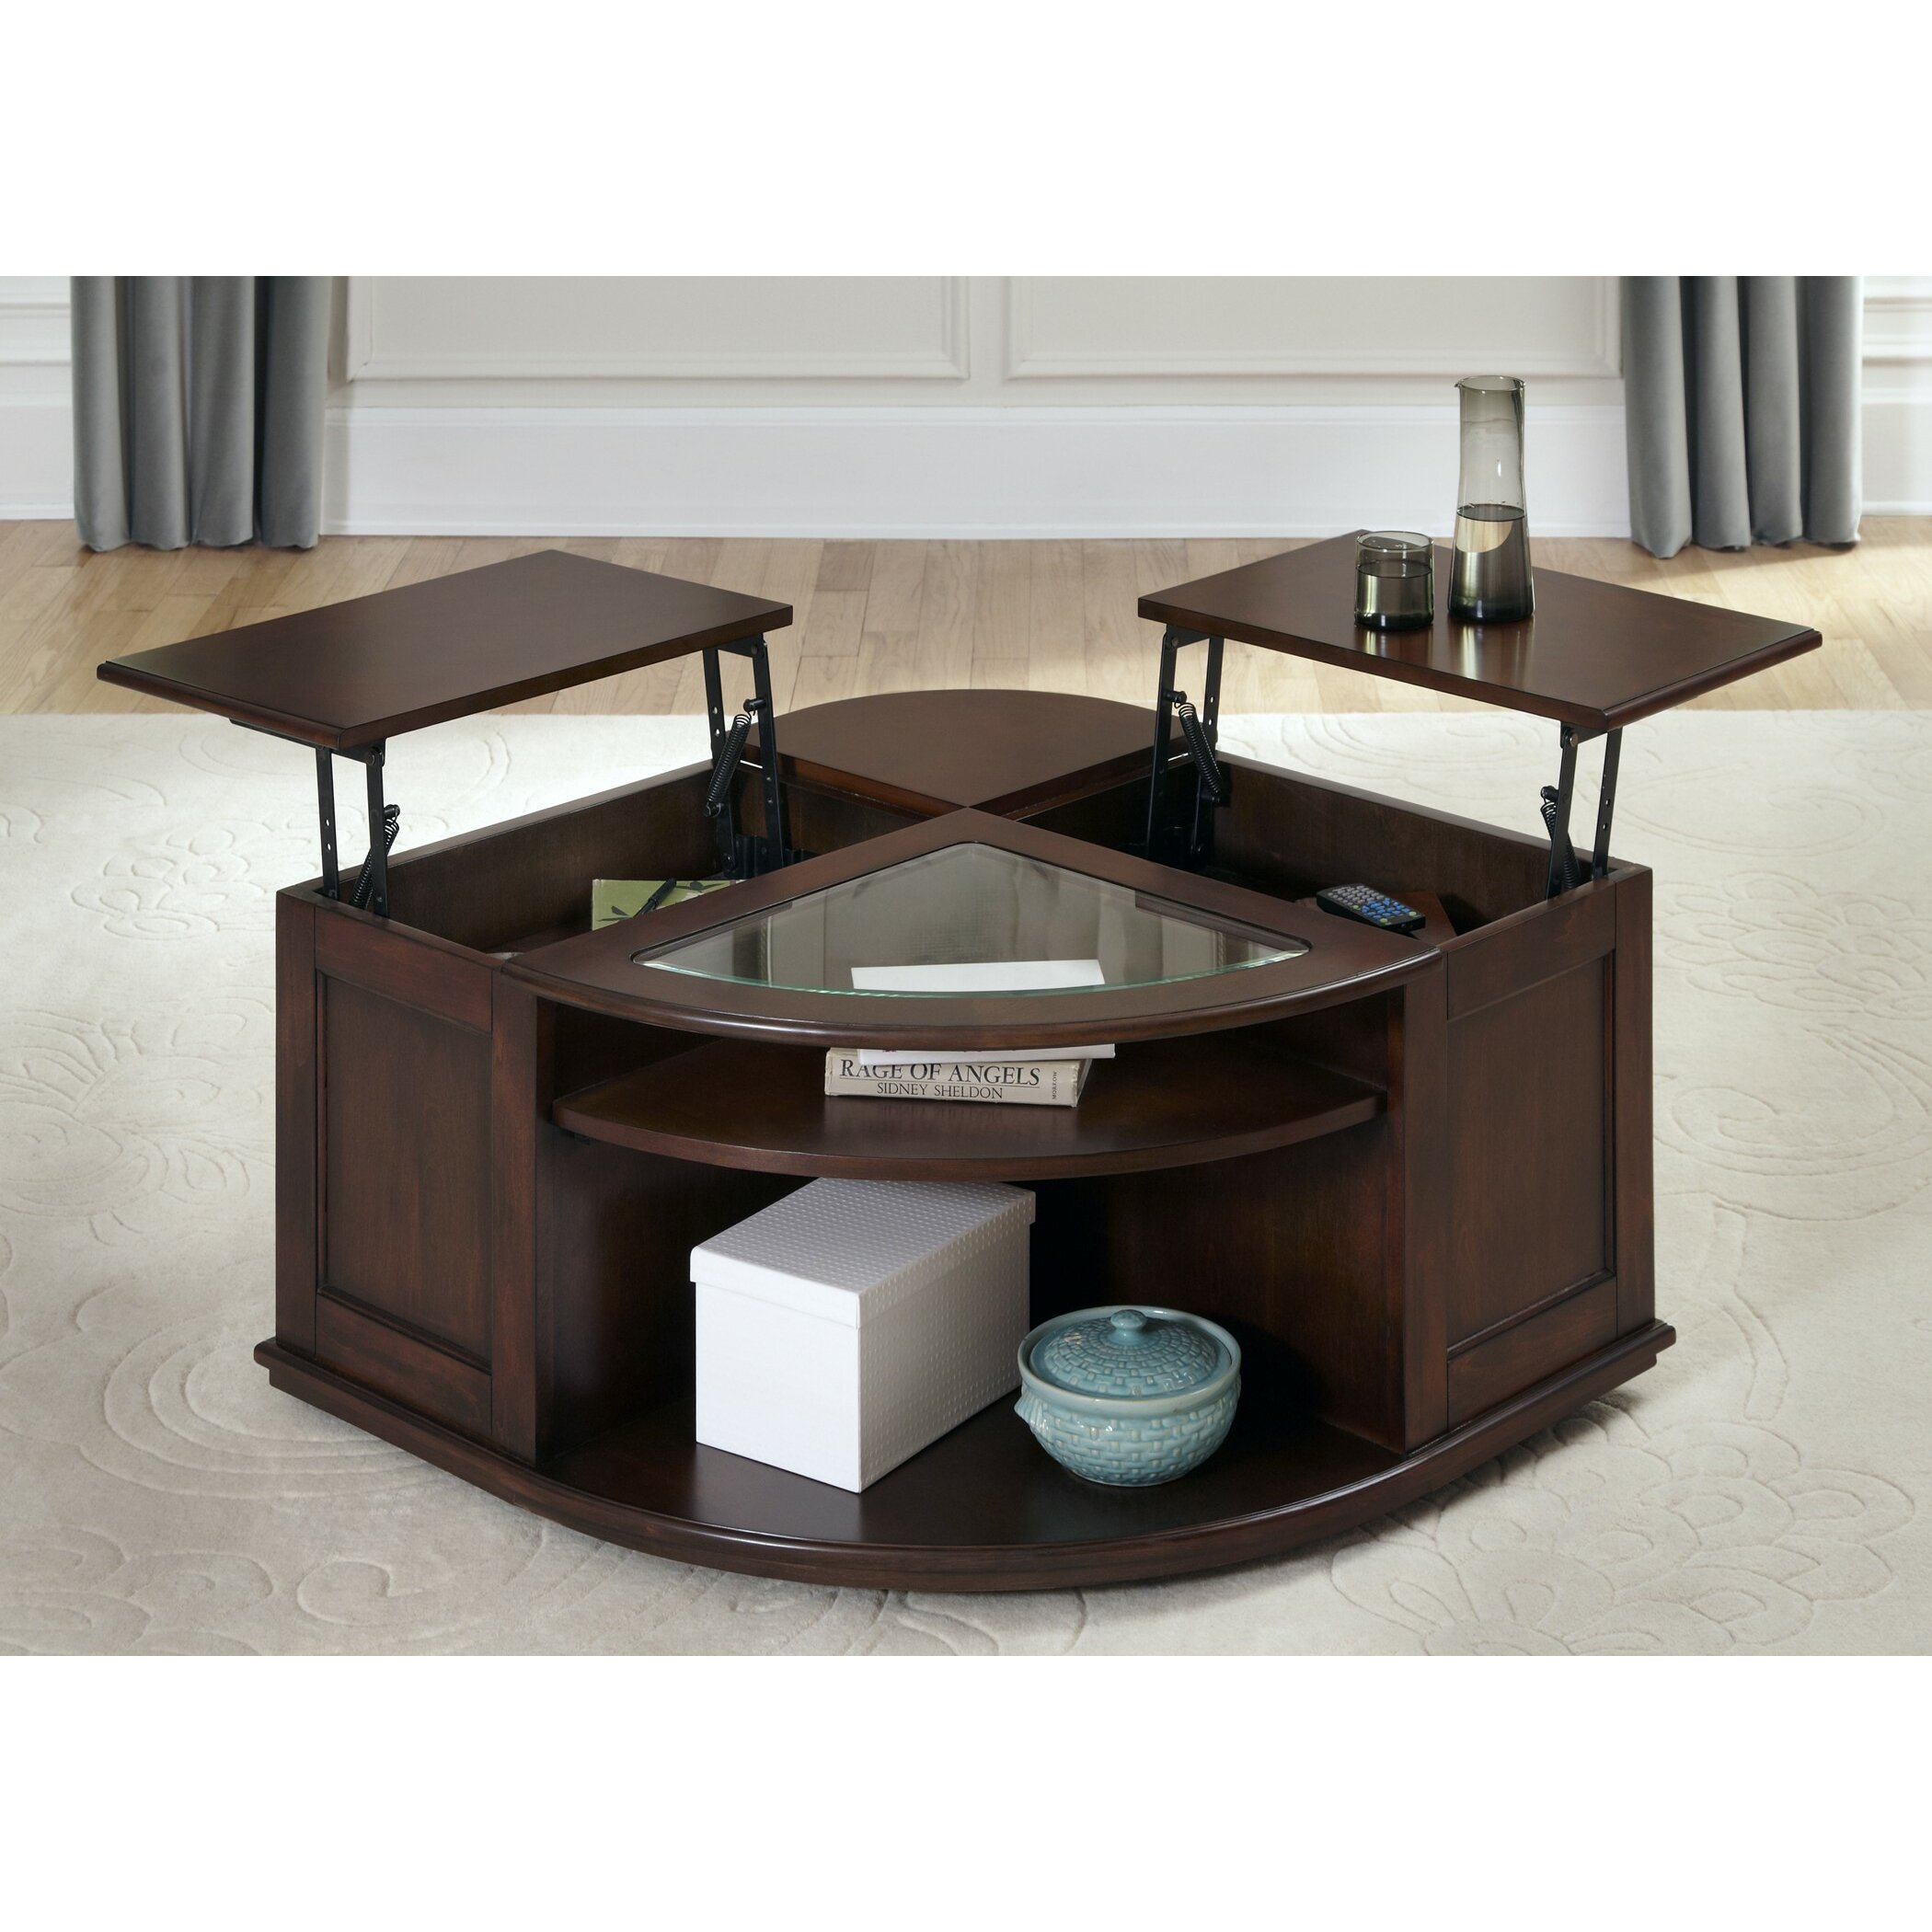 Wildon home coffee table with lift top reviews wayfair Lifting top coffee table